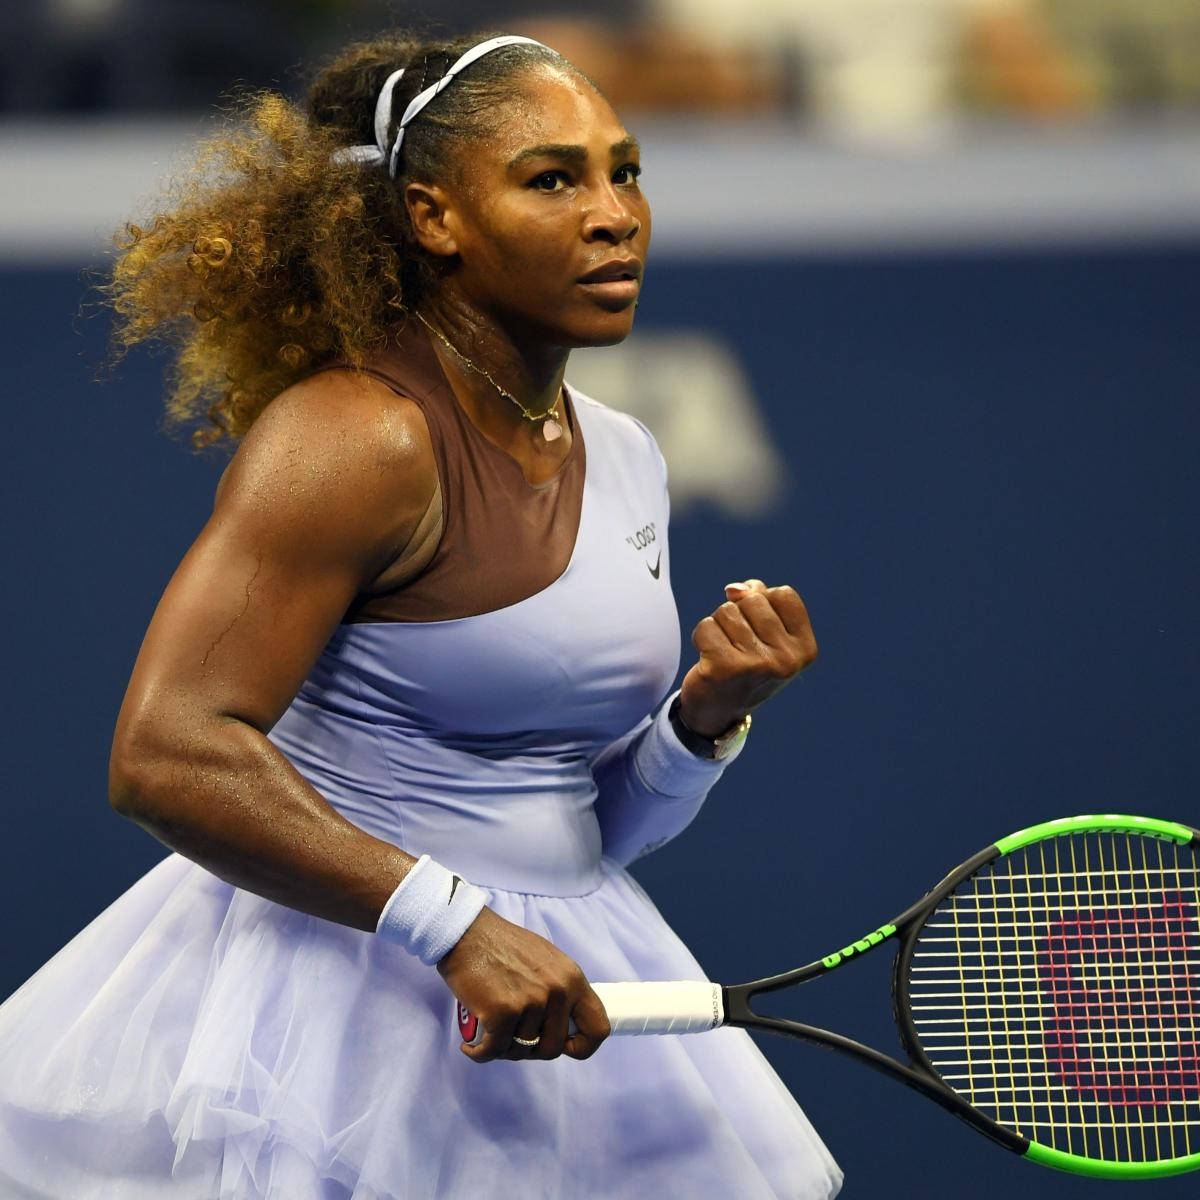 us open tennis 2018 women's final: tv schedule, start time and live